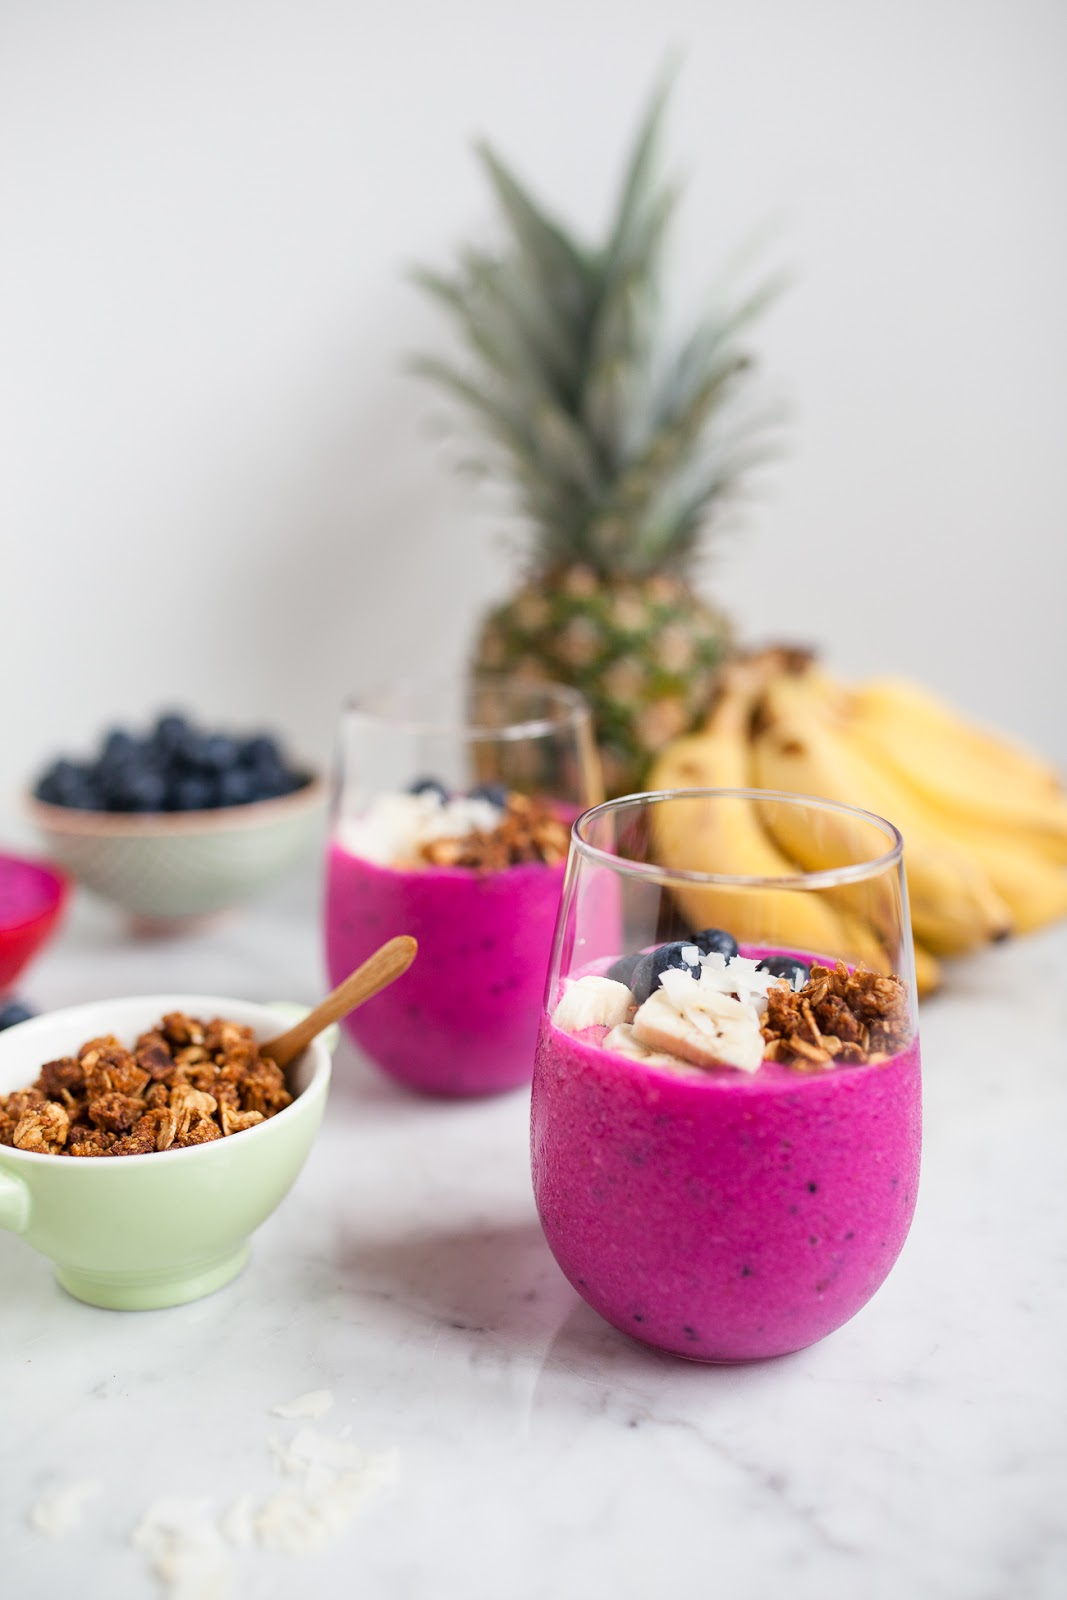 Dragon fruit smoothie recipe via JChong Studio on Thou Swell | 8 Smoothies to Make in the New Year https://thouswell.com/8-smoothies-to-make-in-the-new-year